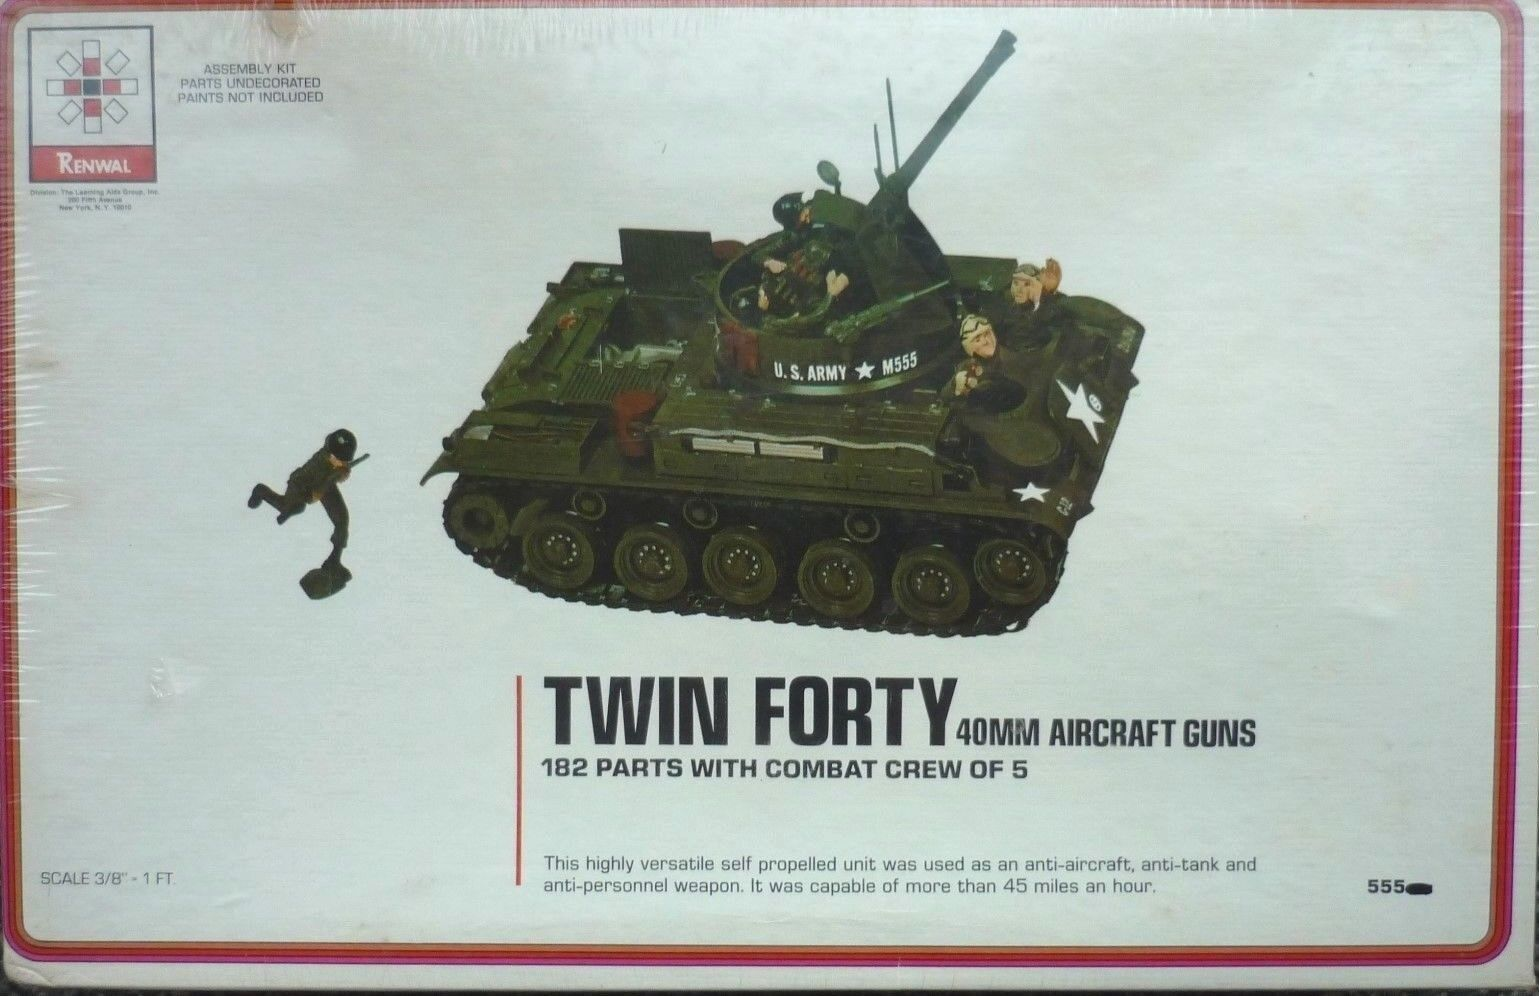 VINTAGE RENWAL TWIN FORTY ANTI - AIRCRAFT TANK - SCALE 3 8  to 12  No 555